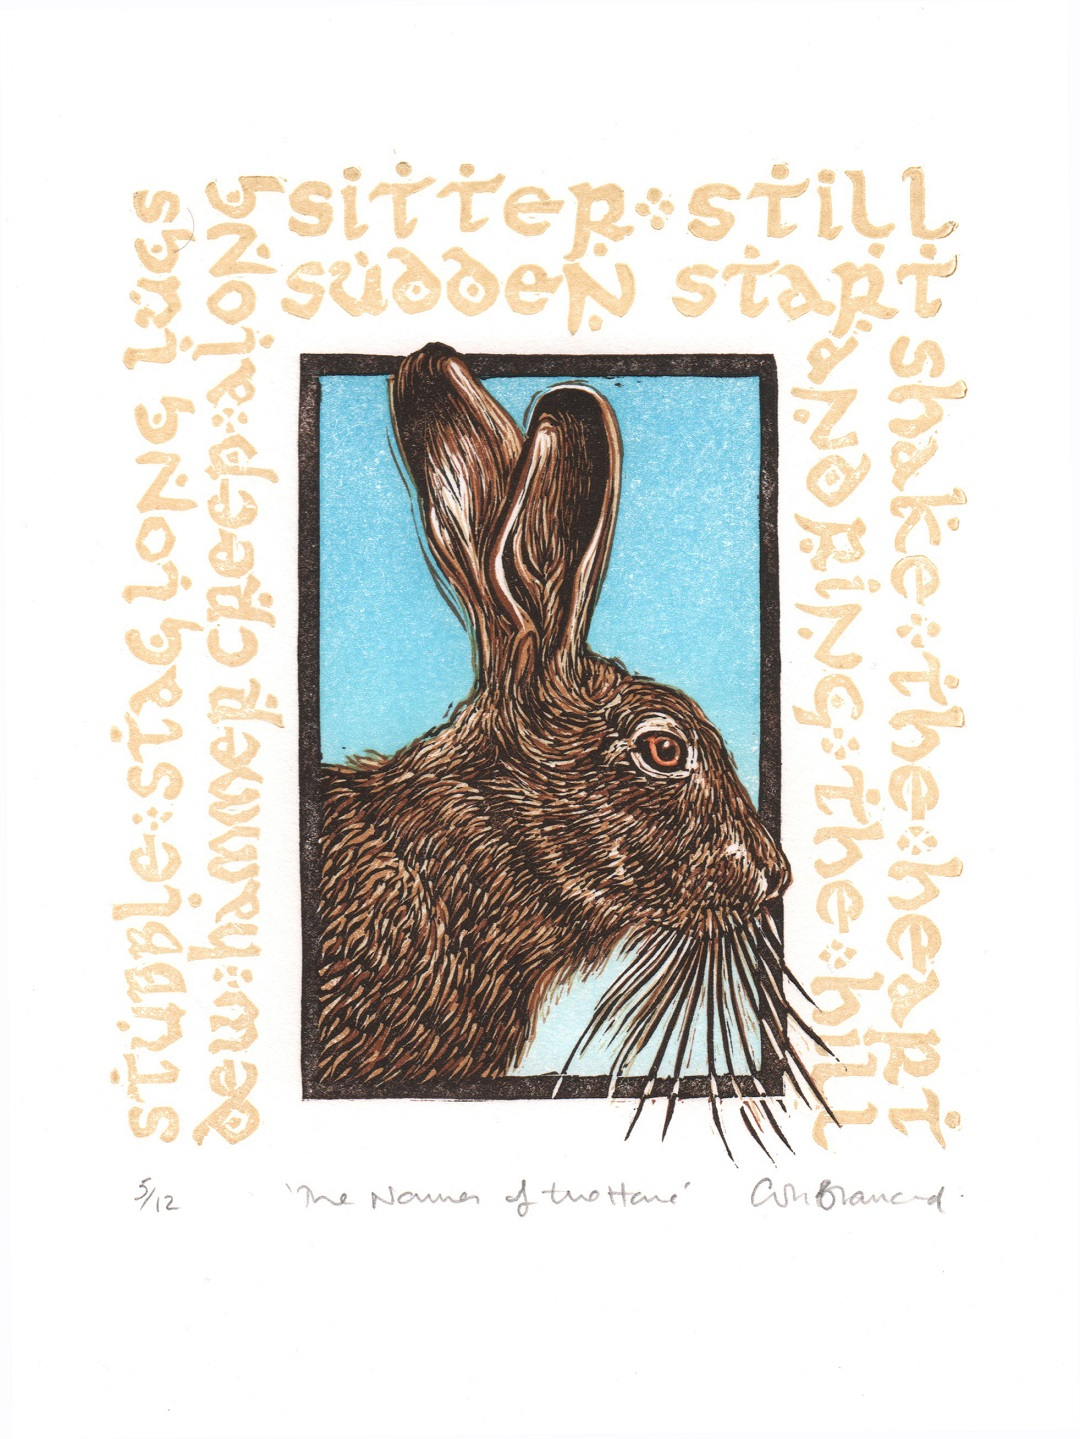 'Names of the Hare' by Colin Blanchard